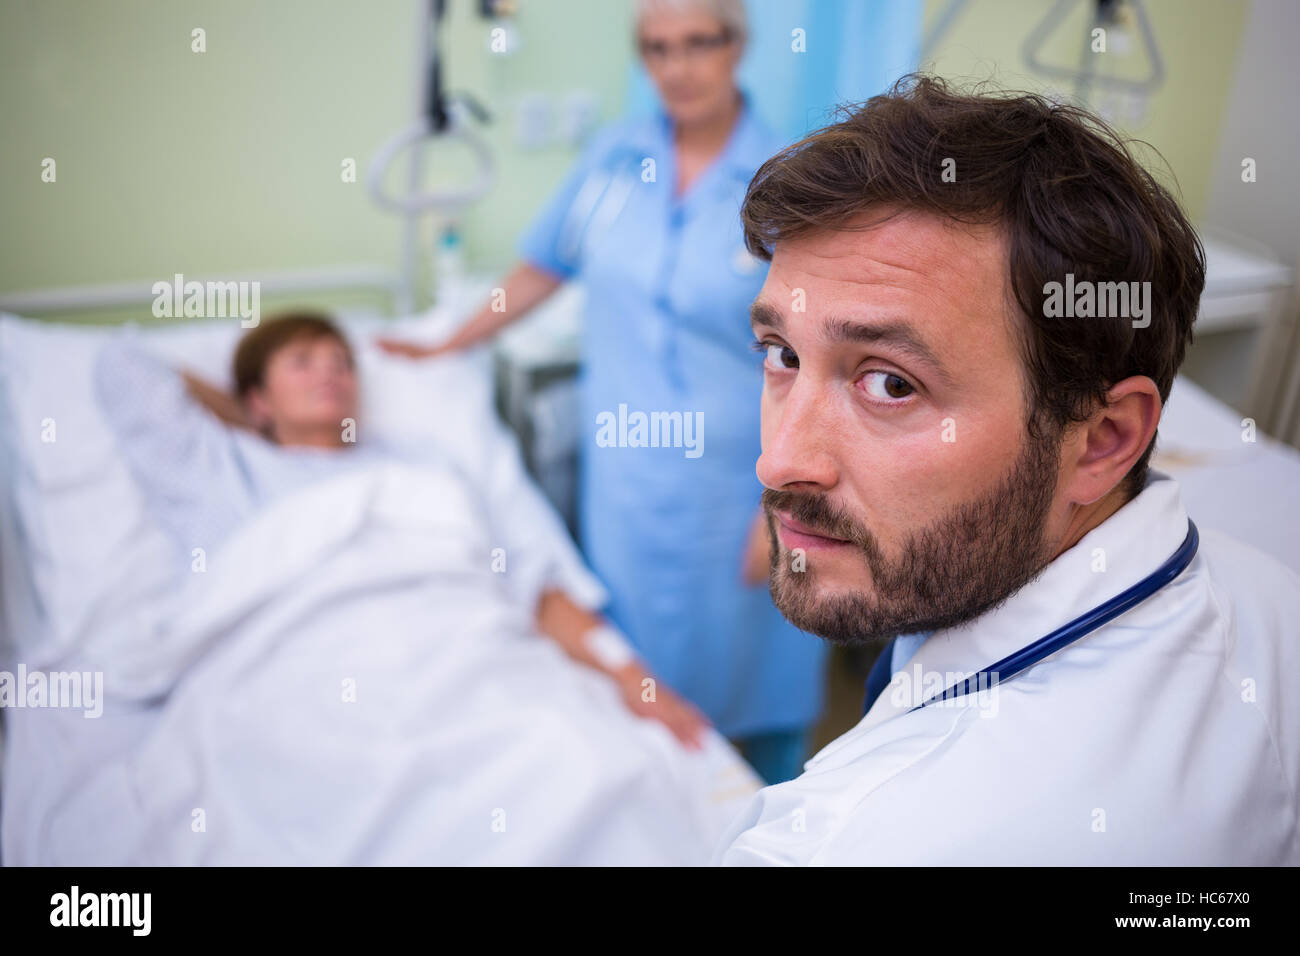 Portrait of doctor standing in hospital room - Stock Image